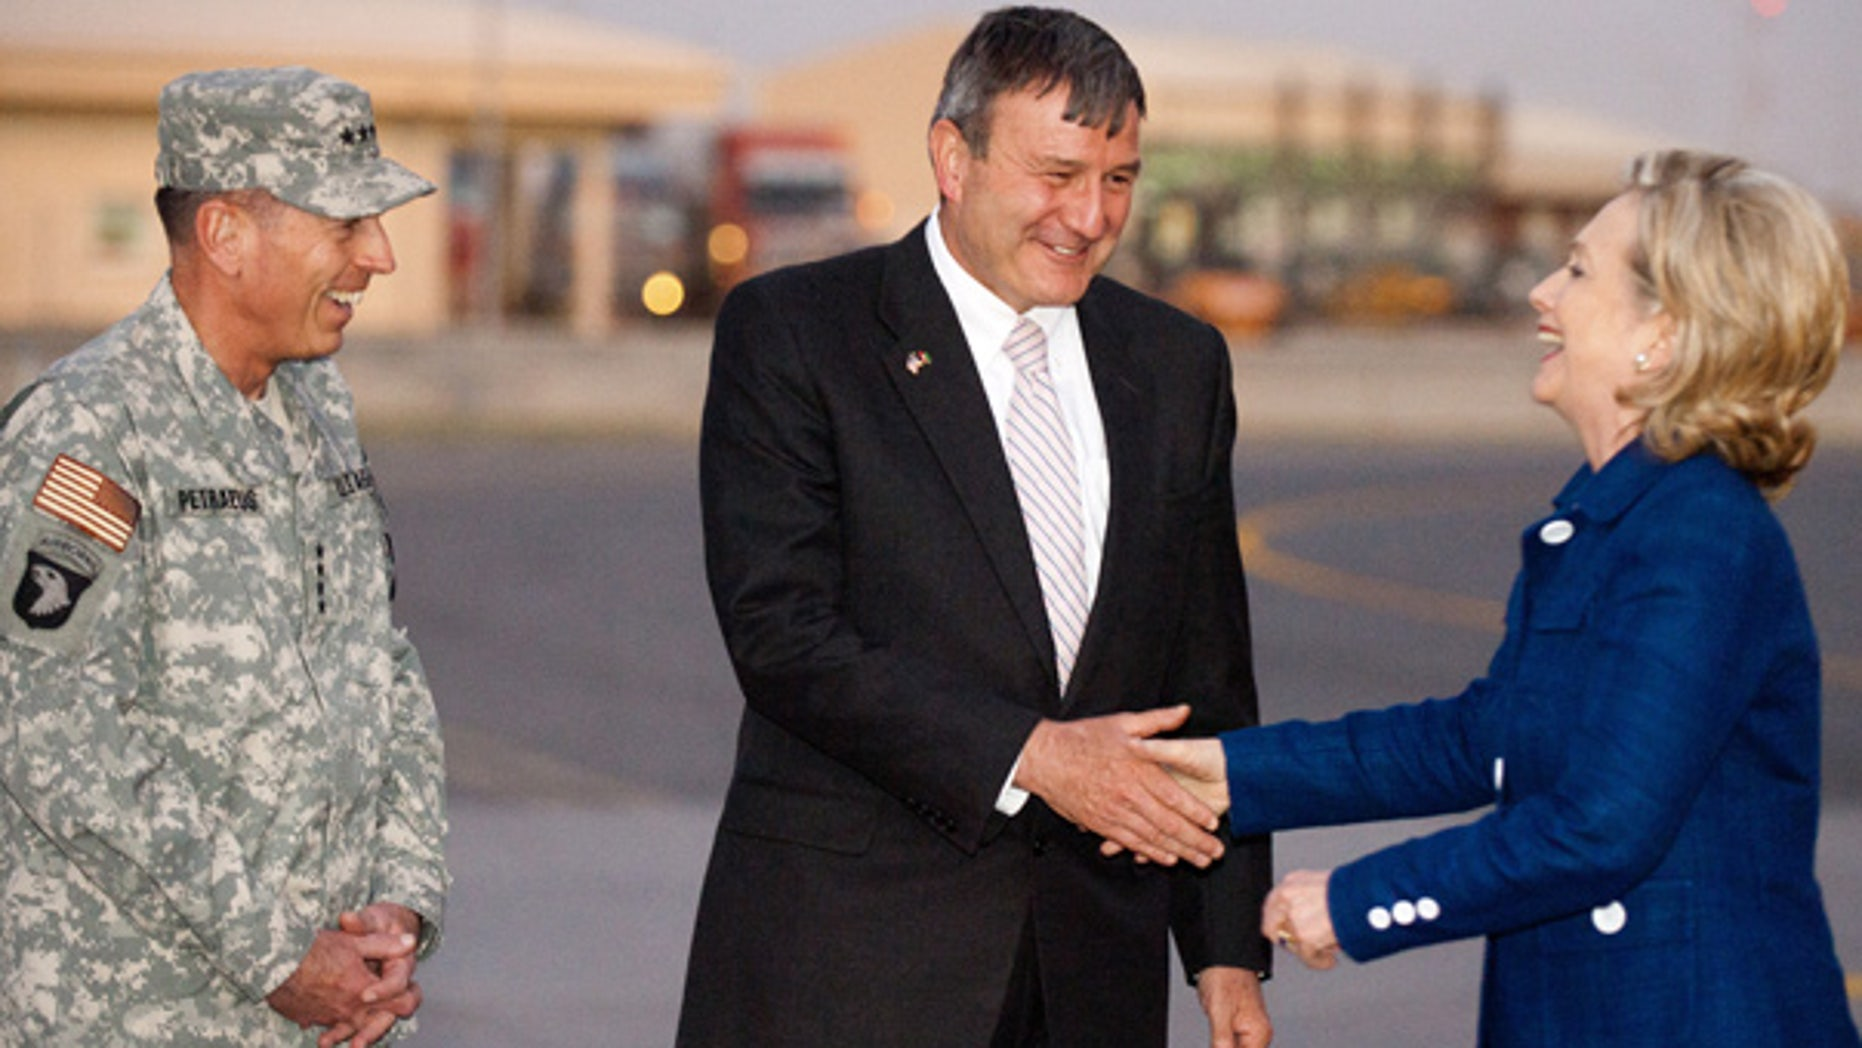 July 19: U.S. Ambassador to Afghanistan Karl Eikenberry, center, and General David Petraeus, left, greet Secretary of State Hillary Clinton as she steps off her plane at Kabul International Airport.